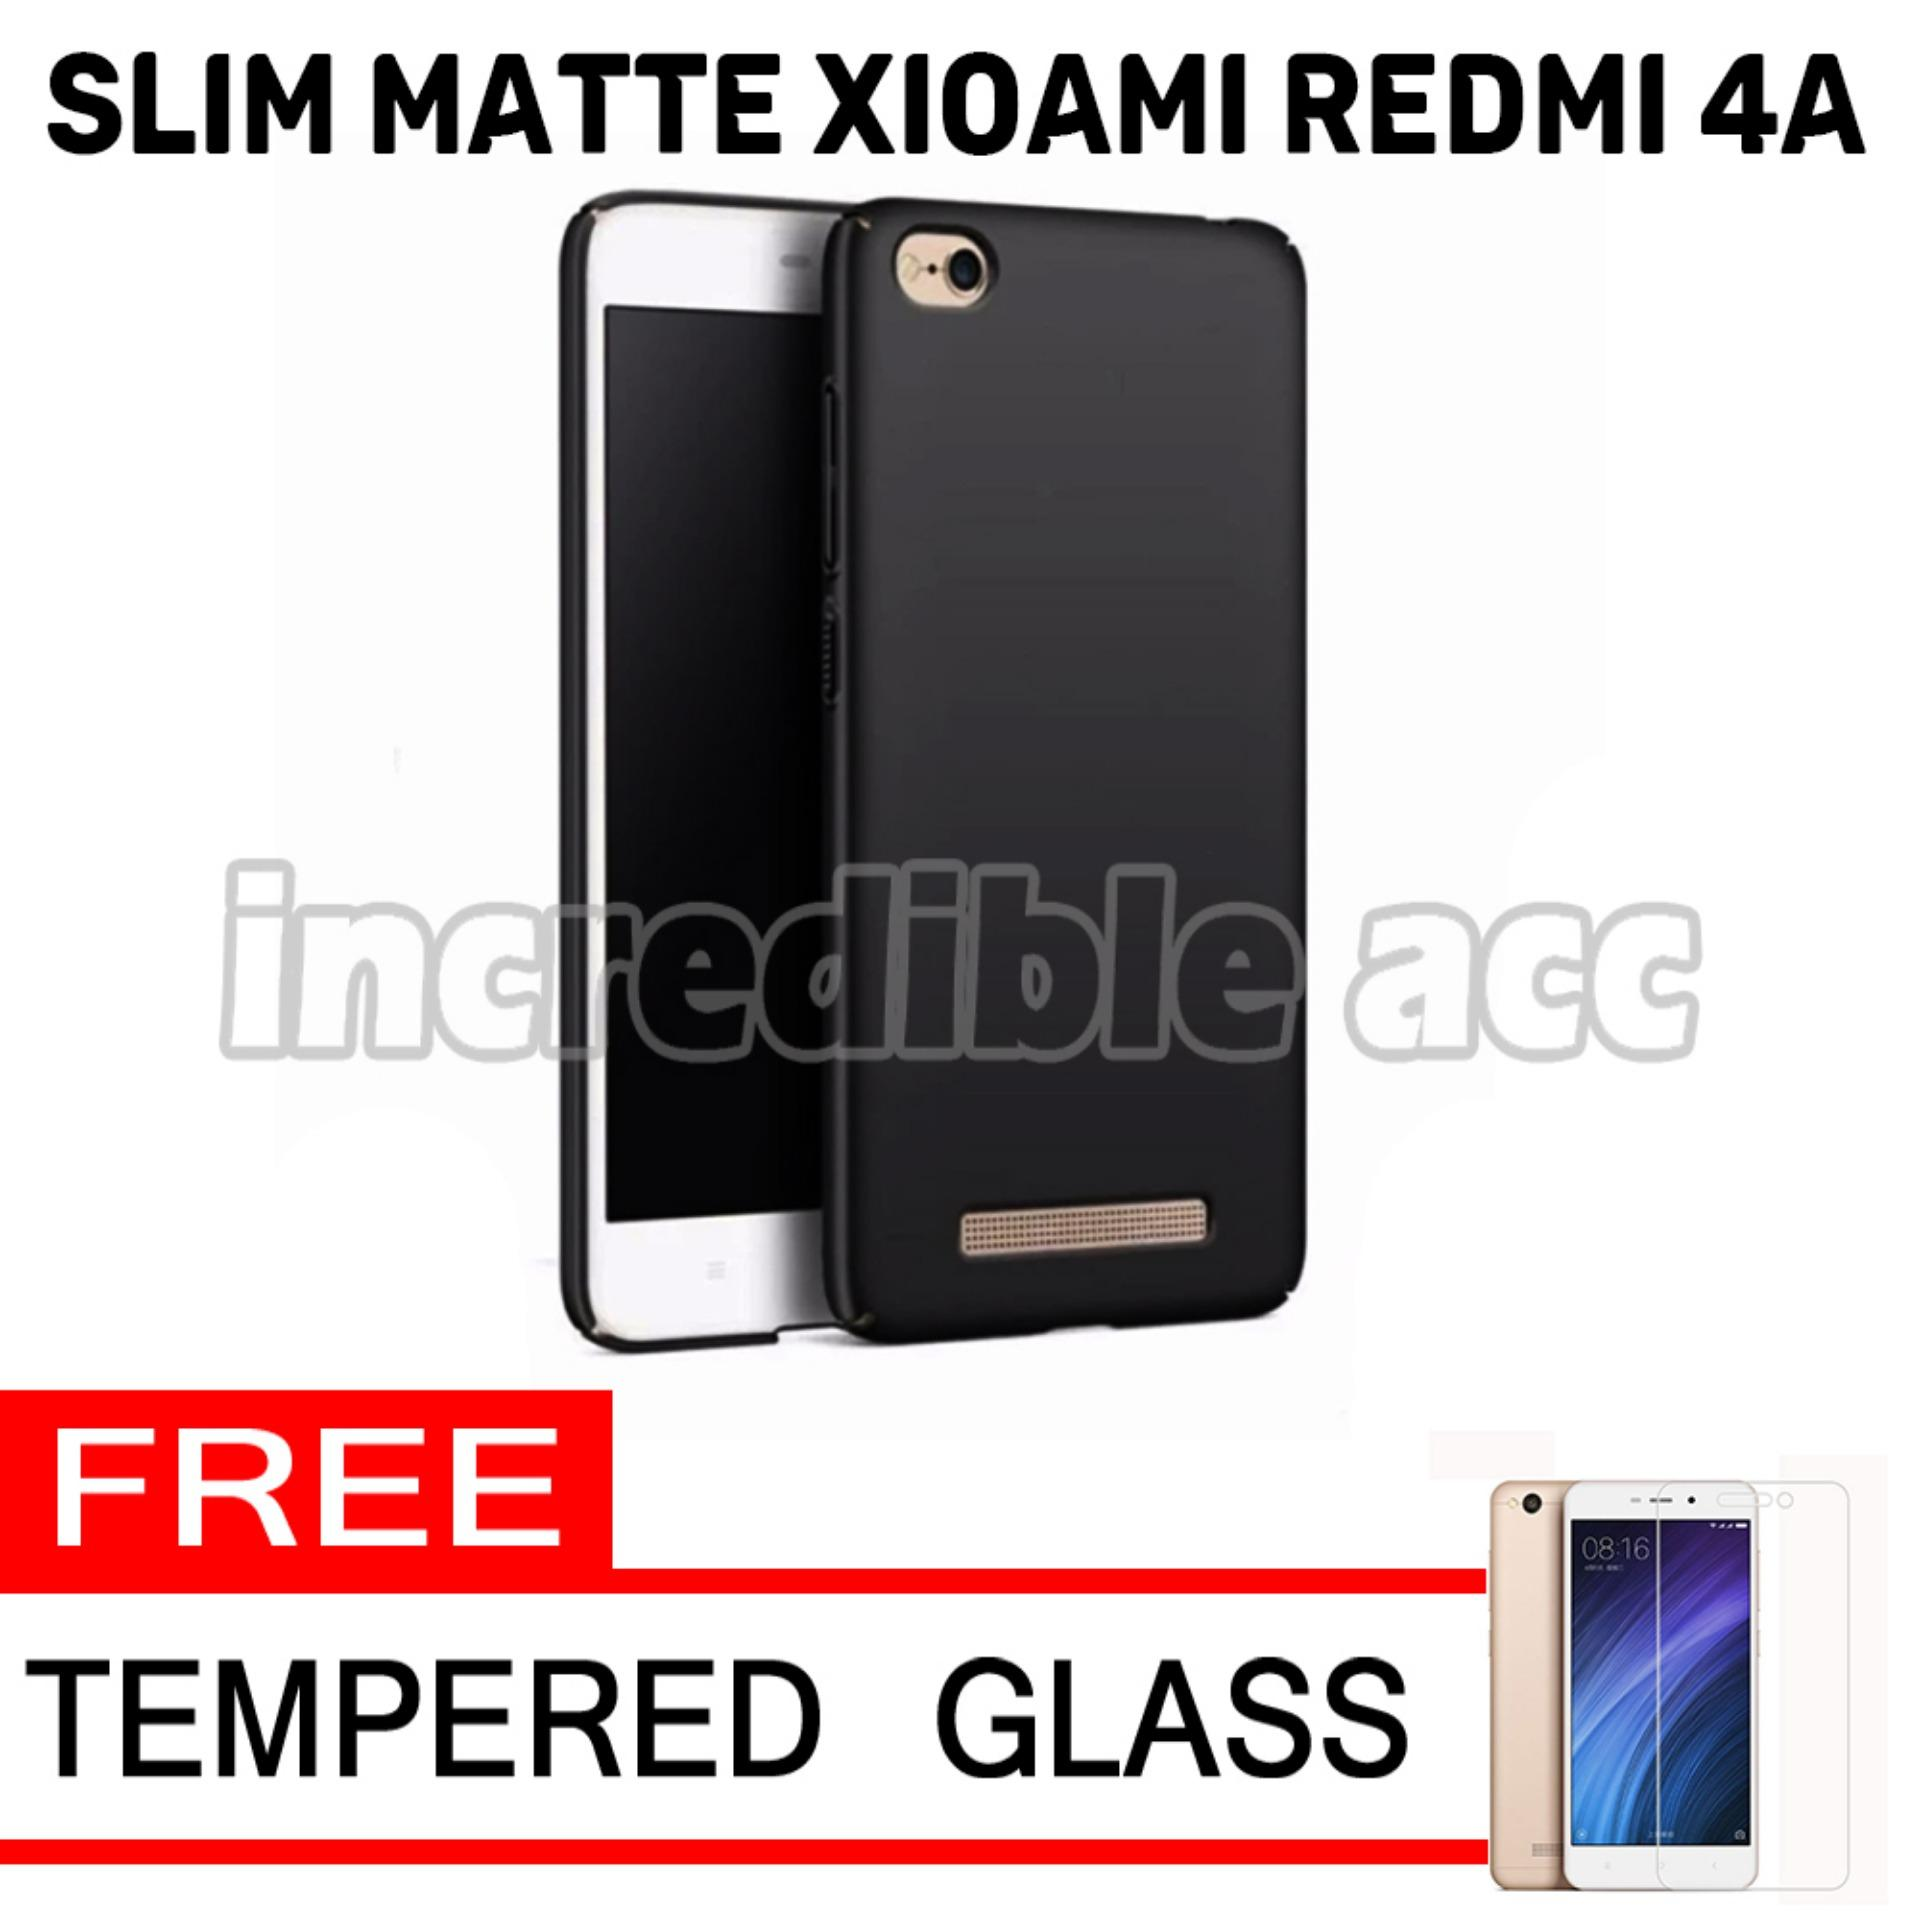 Anti Fingerprint Ultraslim Hybrid Case Baby Soft Babby Skin Softase Silicon Matte  for Xiaomi Redmi 4A - Black + Free Tempered Glass